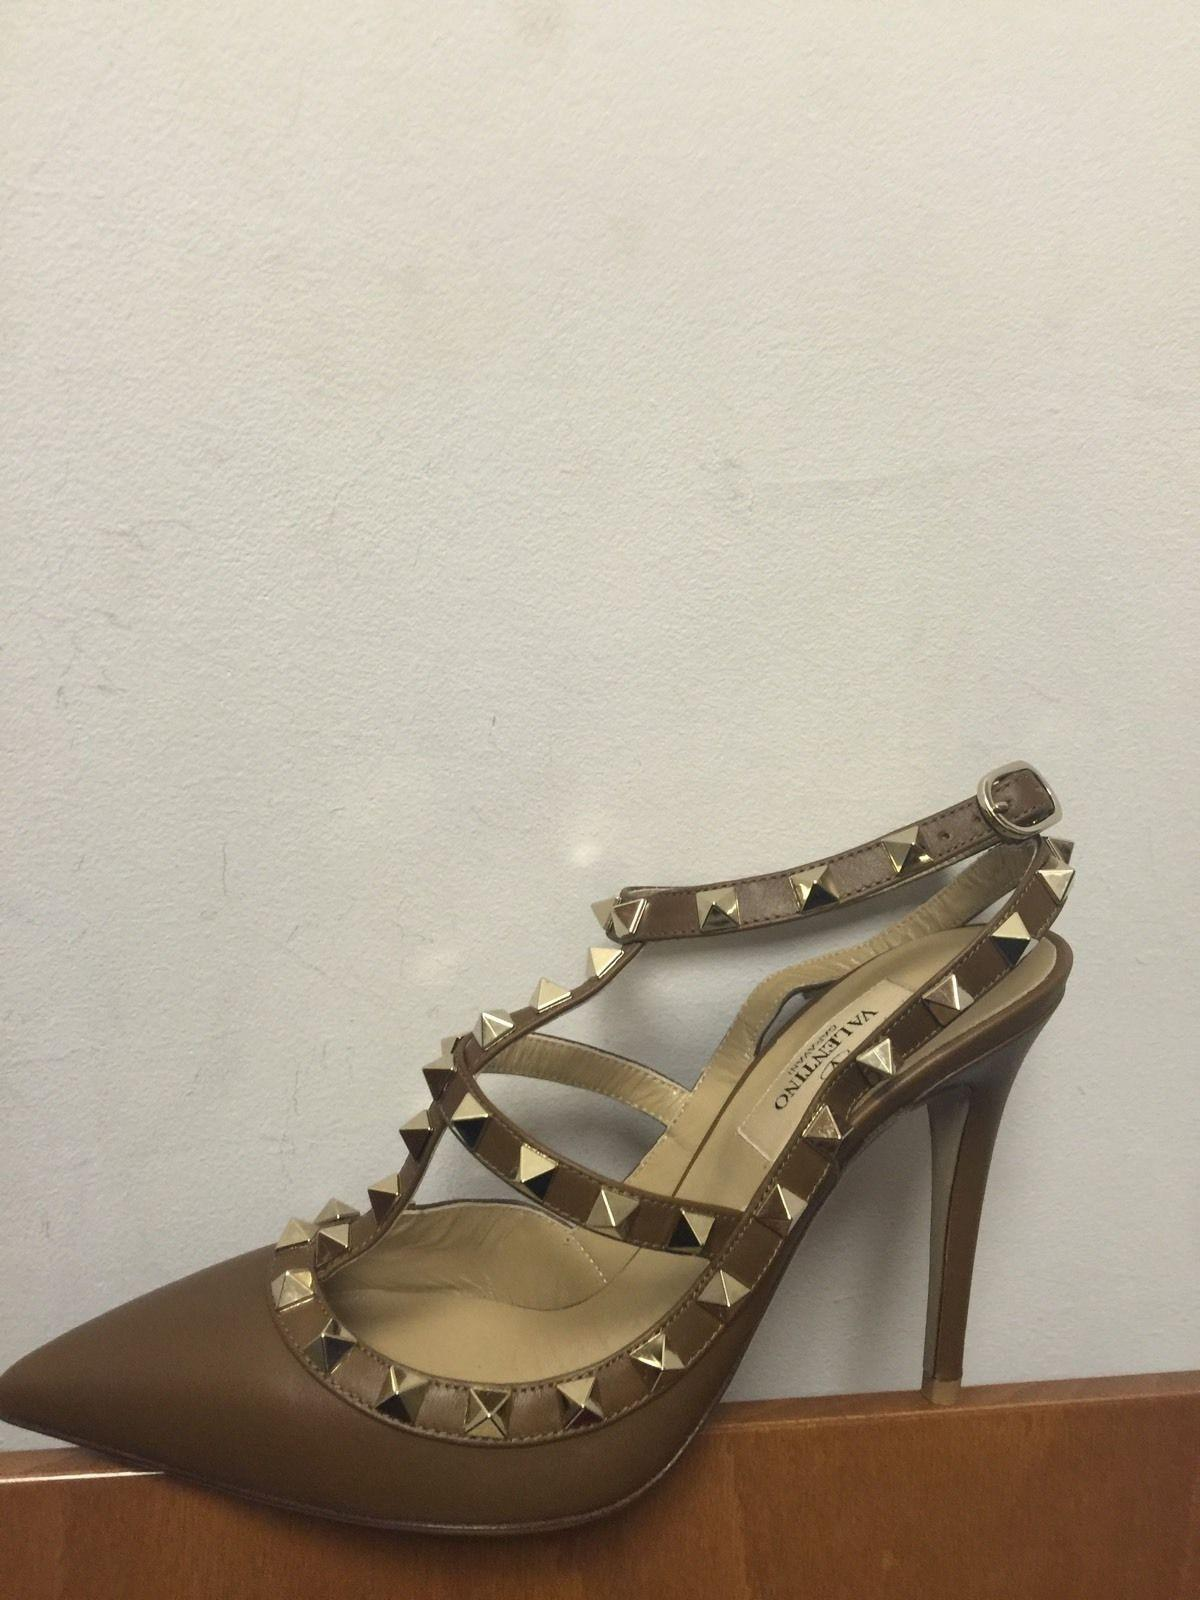 Valentino Brown Rockstud Eur 36 Pumps Size US 6 Regular (M, B)